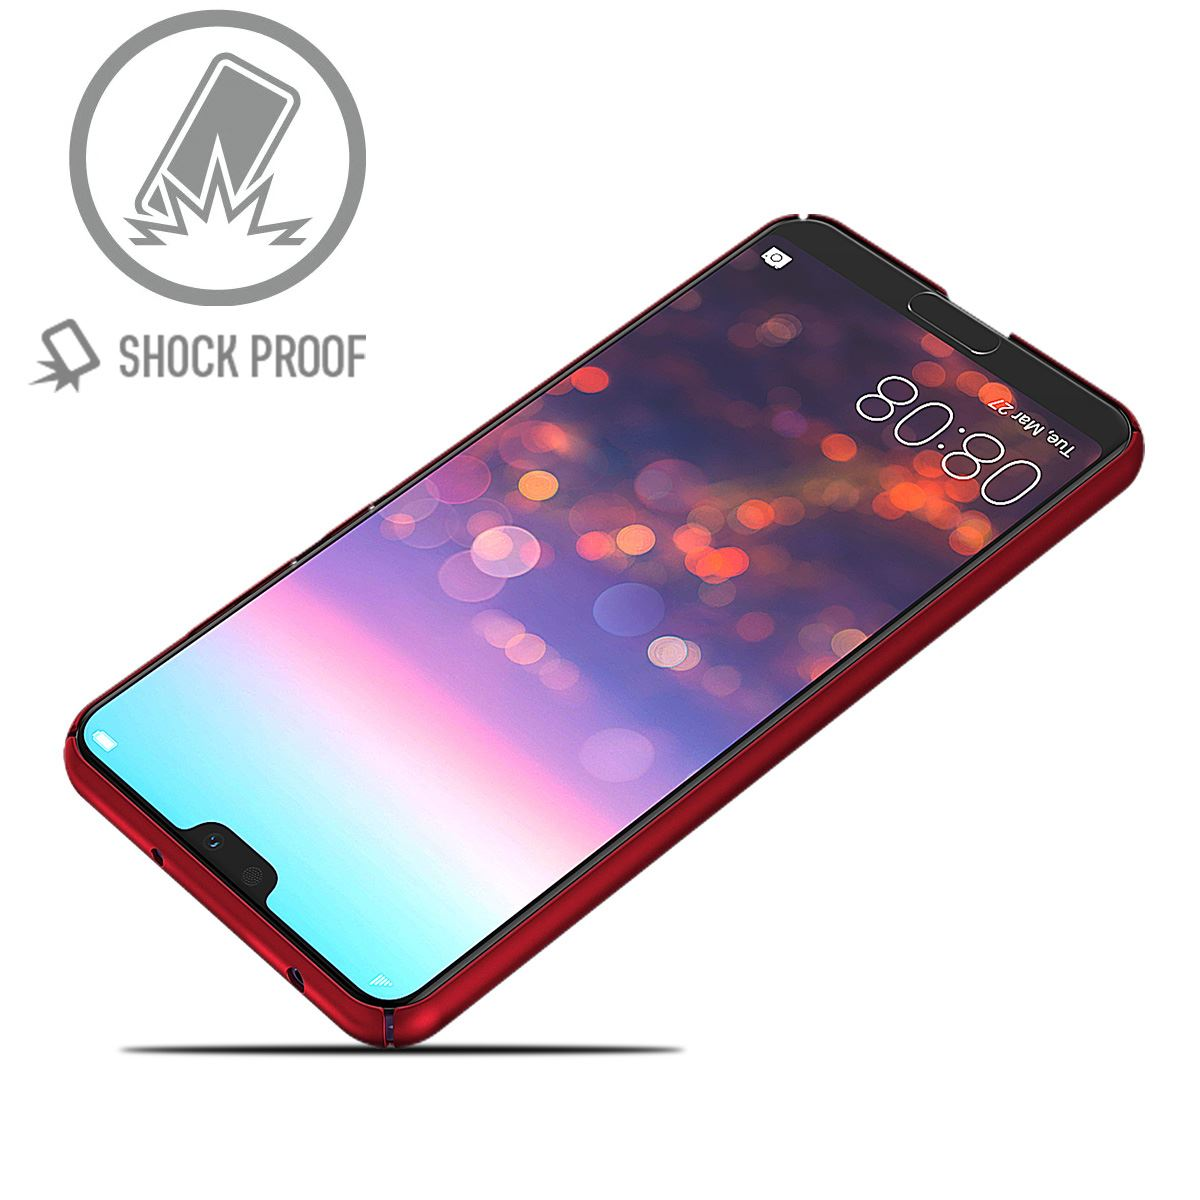 Luxury-Protective-Slim-Thin-Hard-Back-Case-Cover-For-Huawei-P20-Pro-P10-P-Smart thumbnail 25